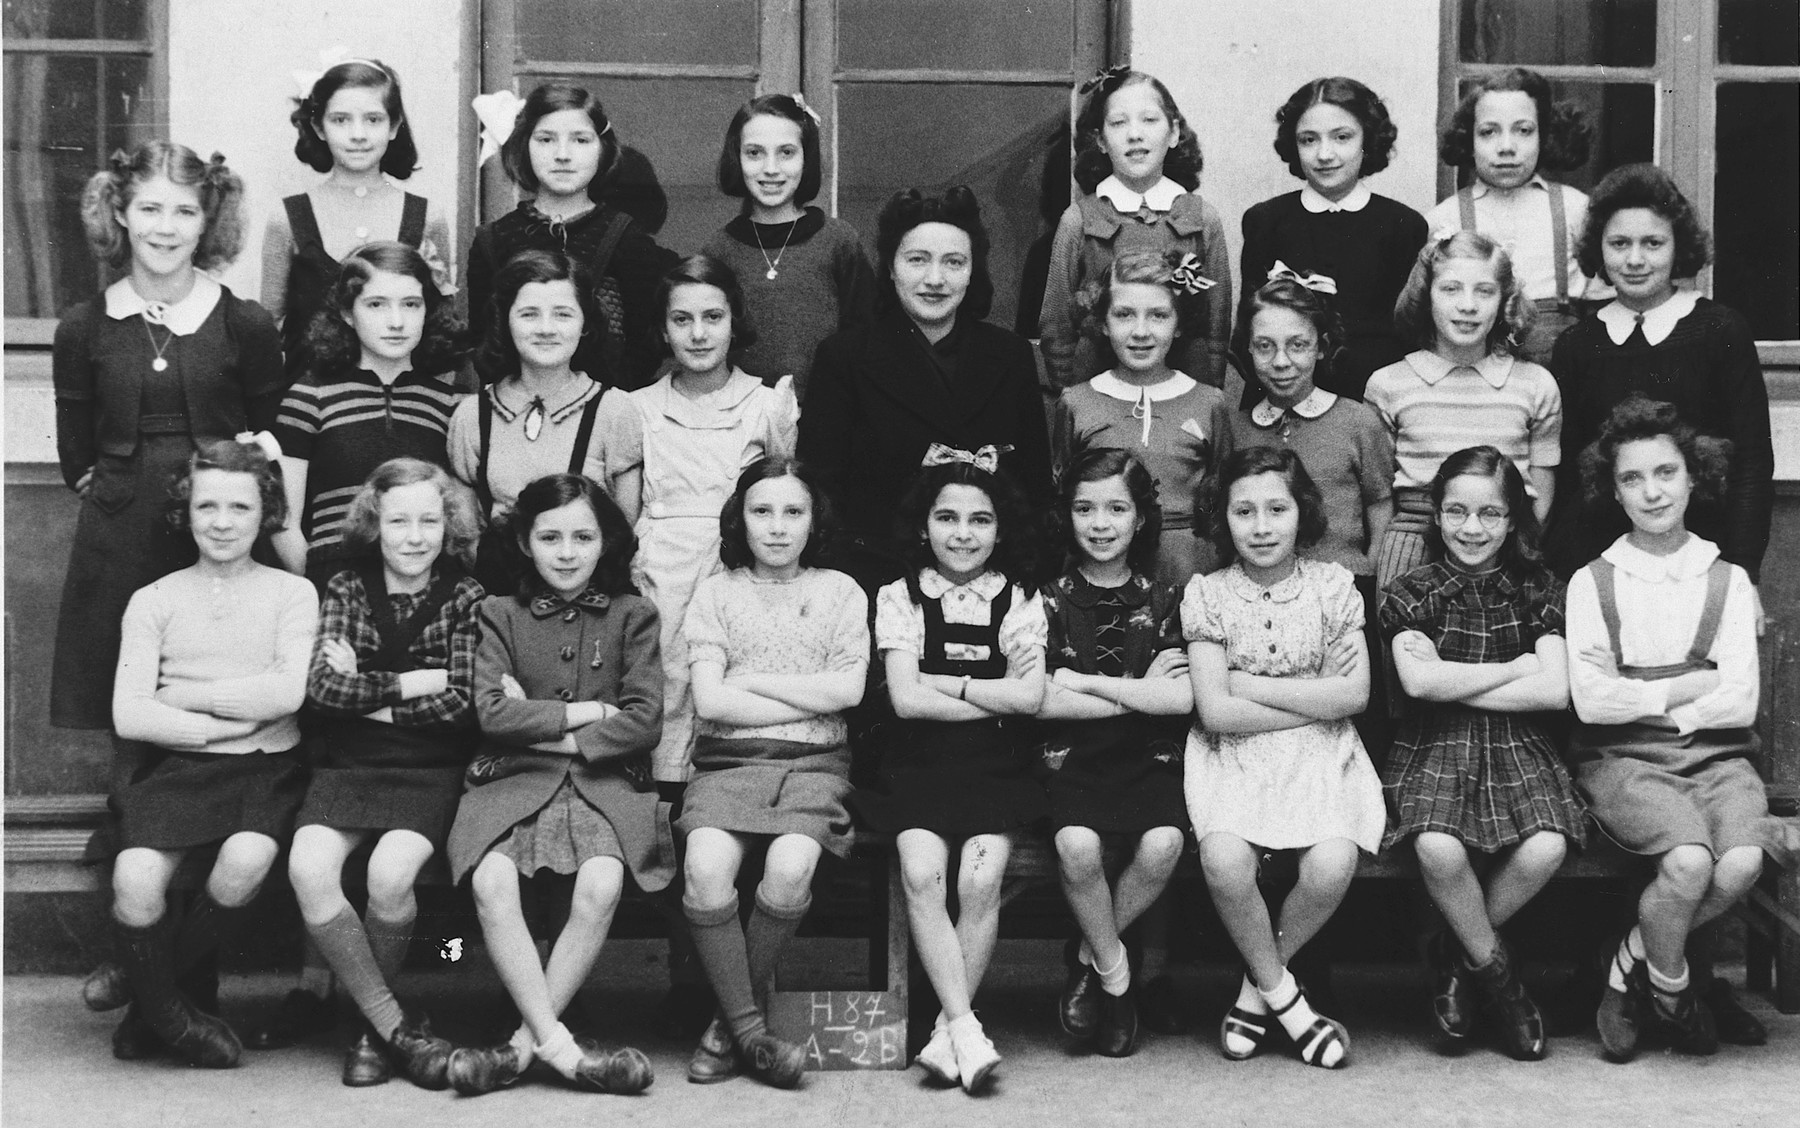 Class portrait of girls in a French elementary school.  Pictured in the front row (fifth from the left) is the only Jew in the class, Regine Gartenlaub.